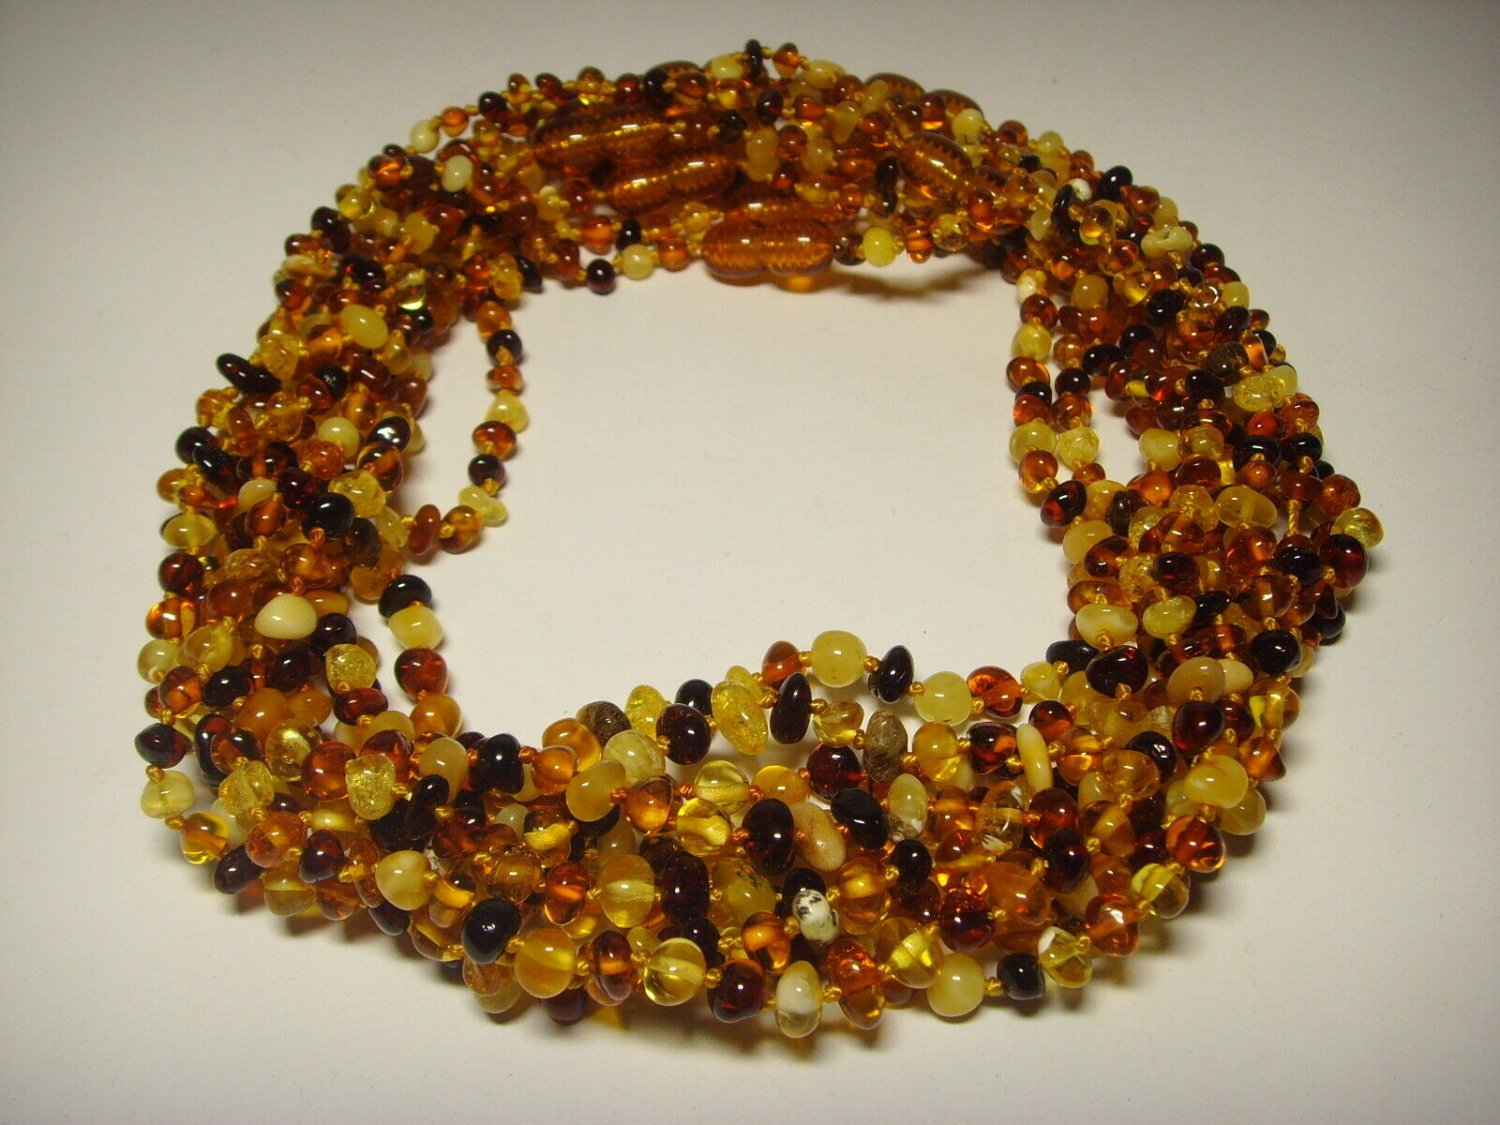 Lot of 10  Baby cerified  Genuine Baltic Amber Necklaces 39.23gr. F-163